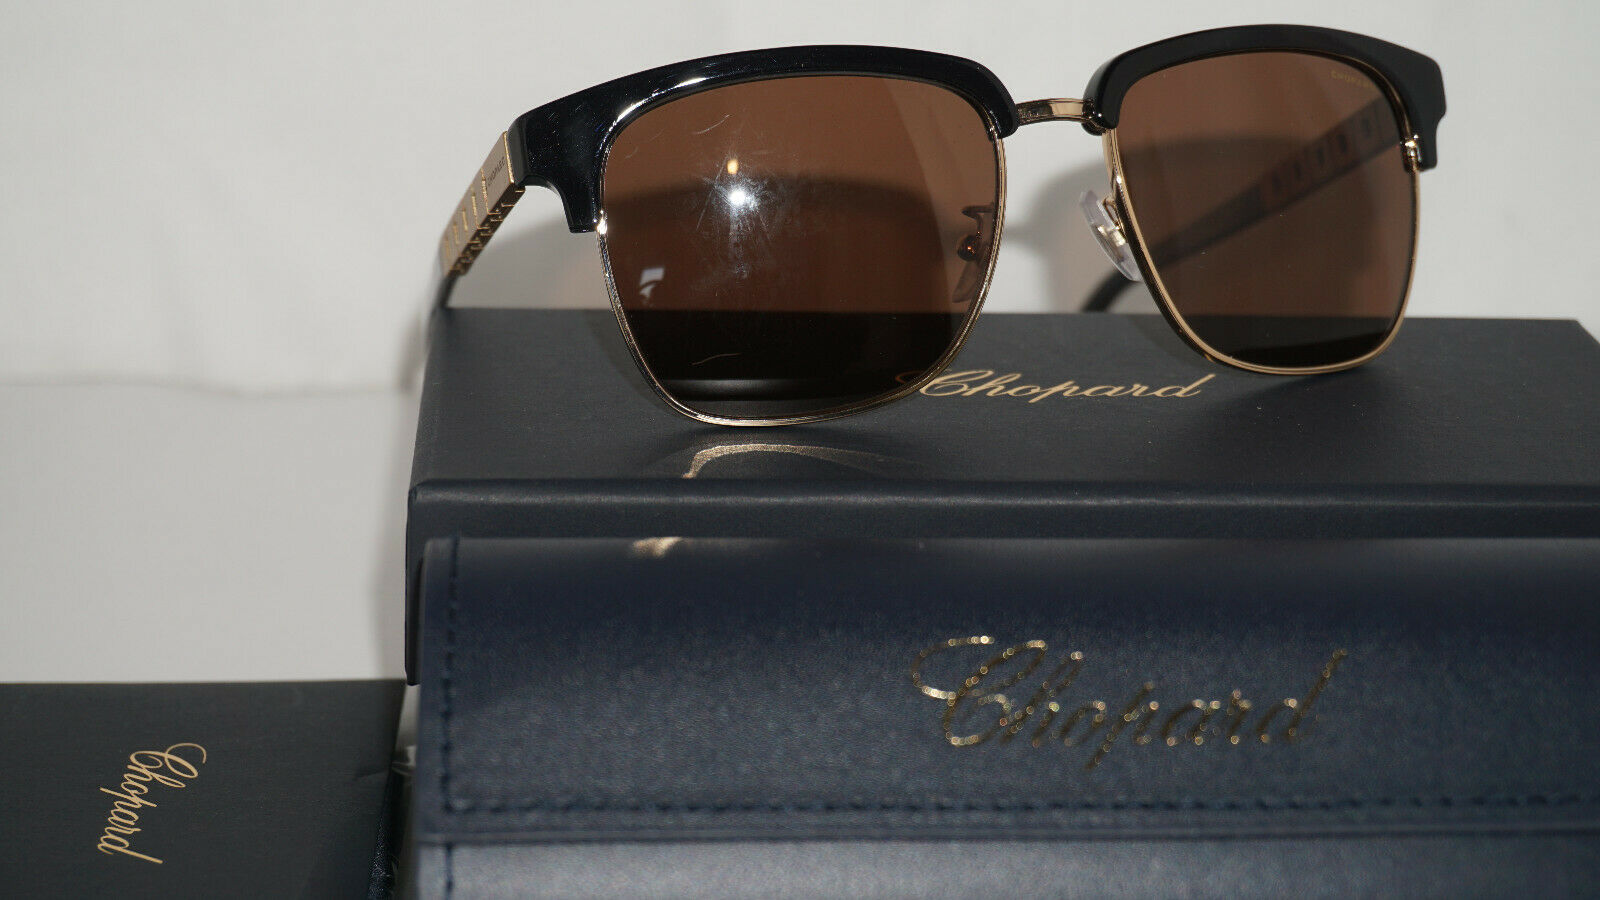 Chopard Sunglasses New Rose Gold Polished Brown Polarized SCHB30 300P 55 17 140